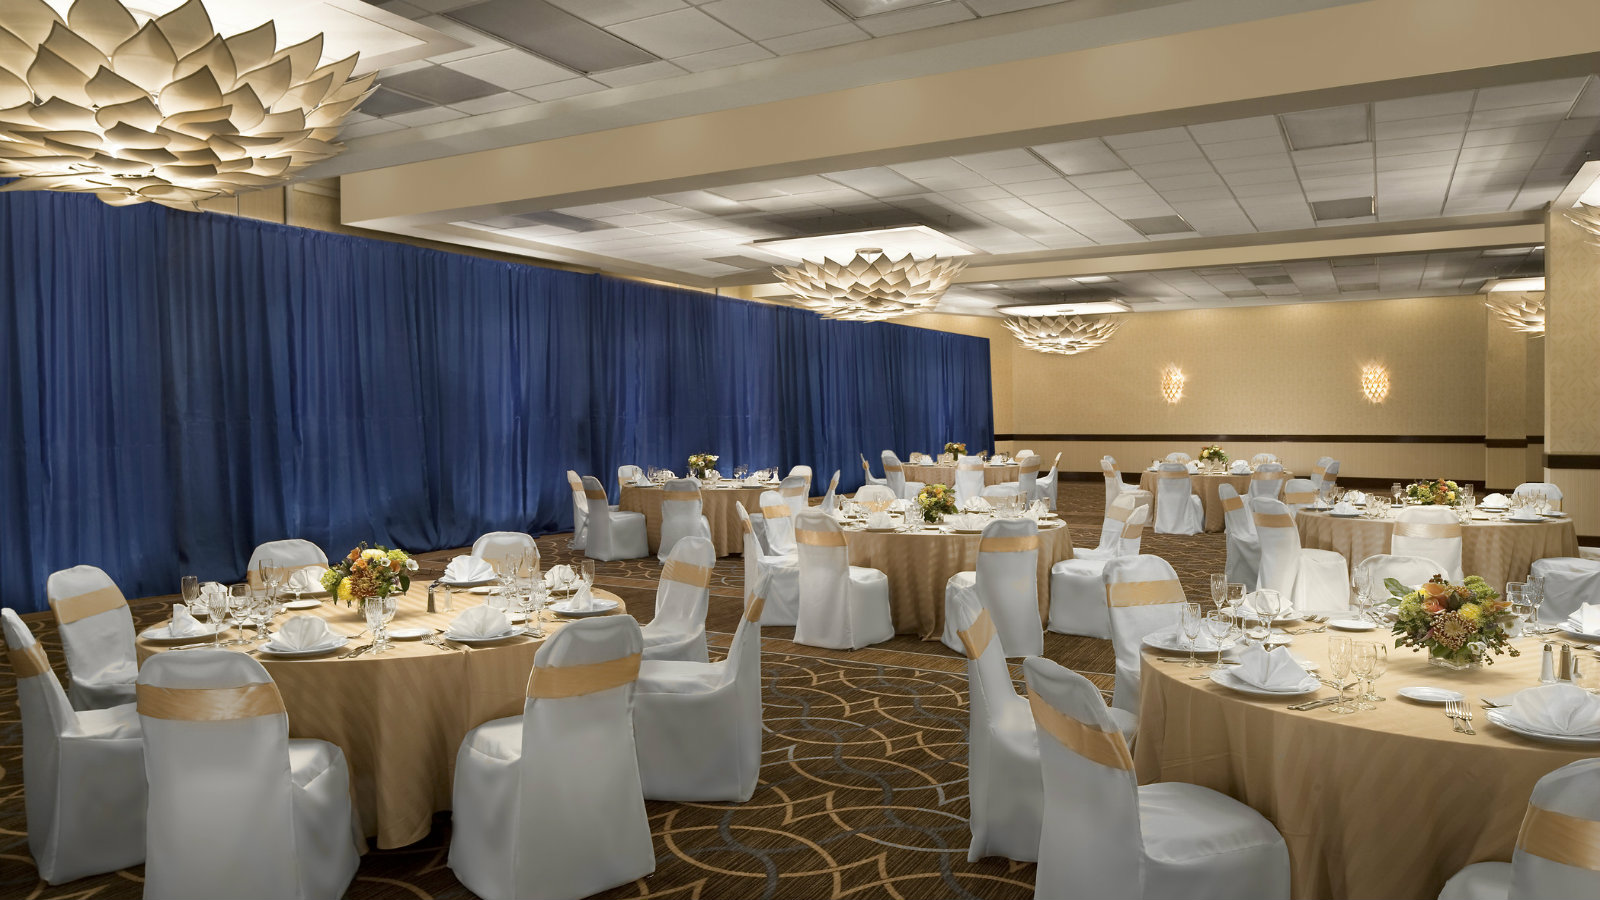 Connecticut Wedding Venue - Ballroom at Sheraton Stamford Hotel